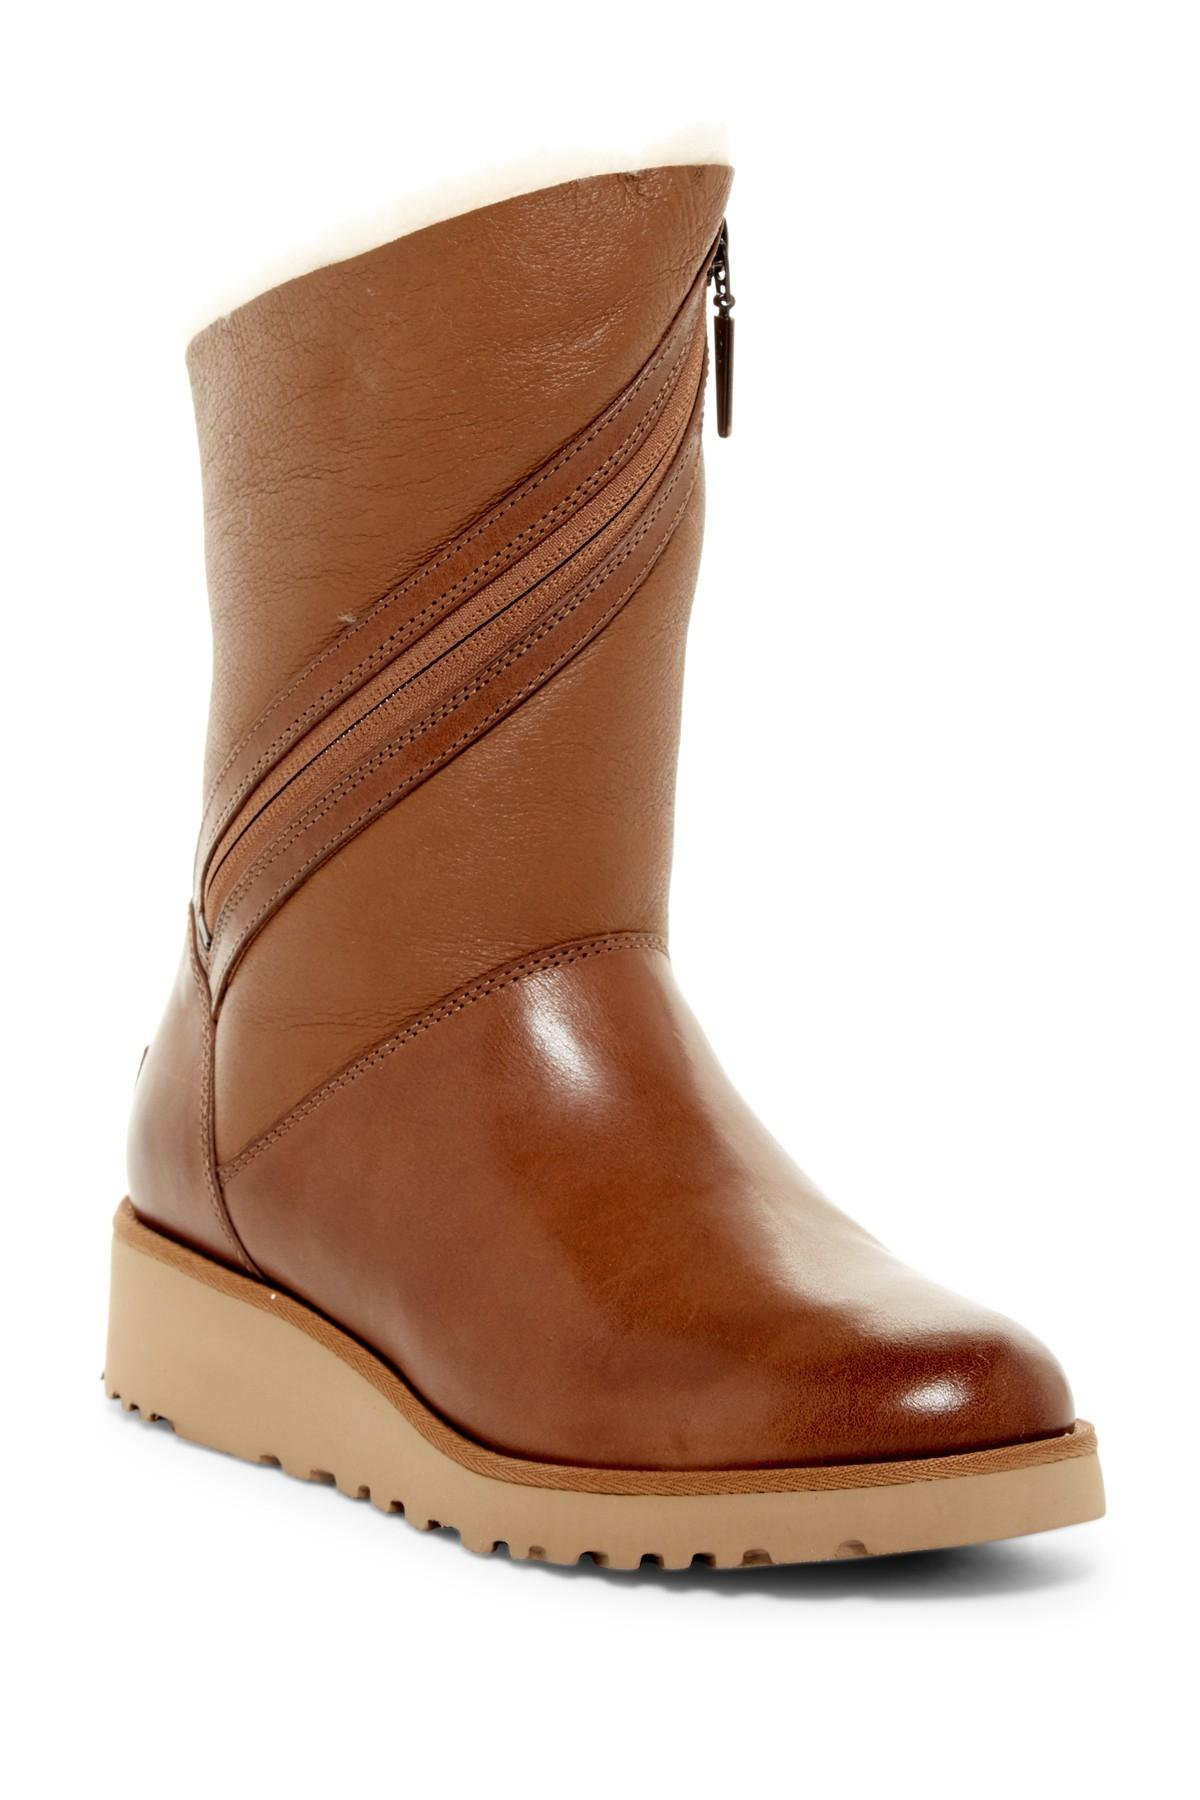 UGG Australia Chestnut Low Wedge Shearling Lined Boots ...